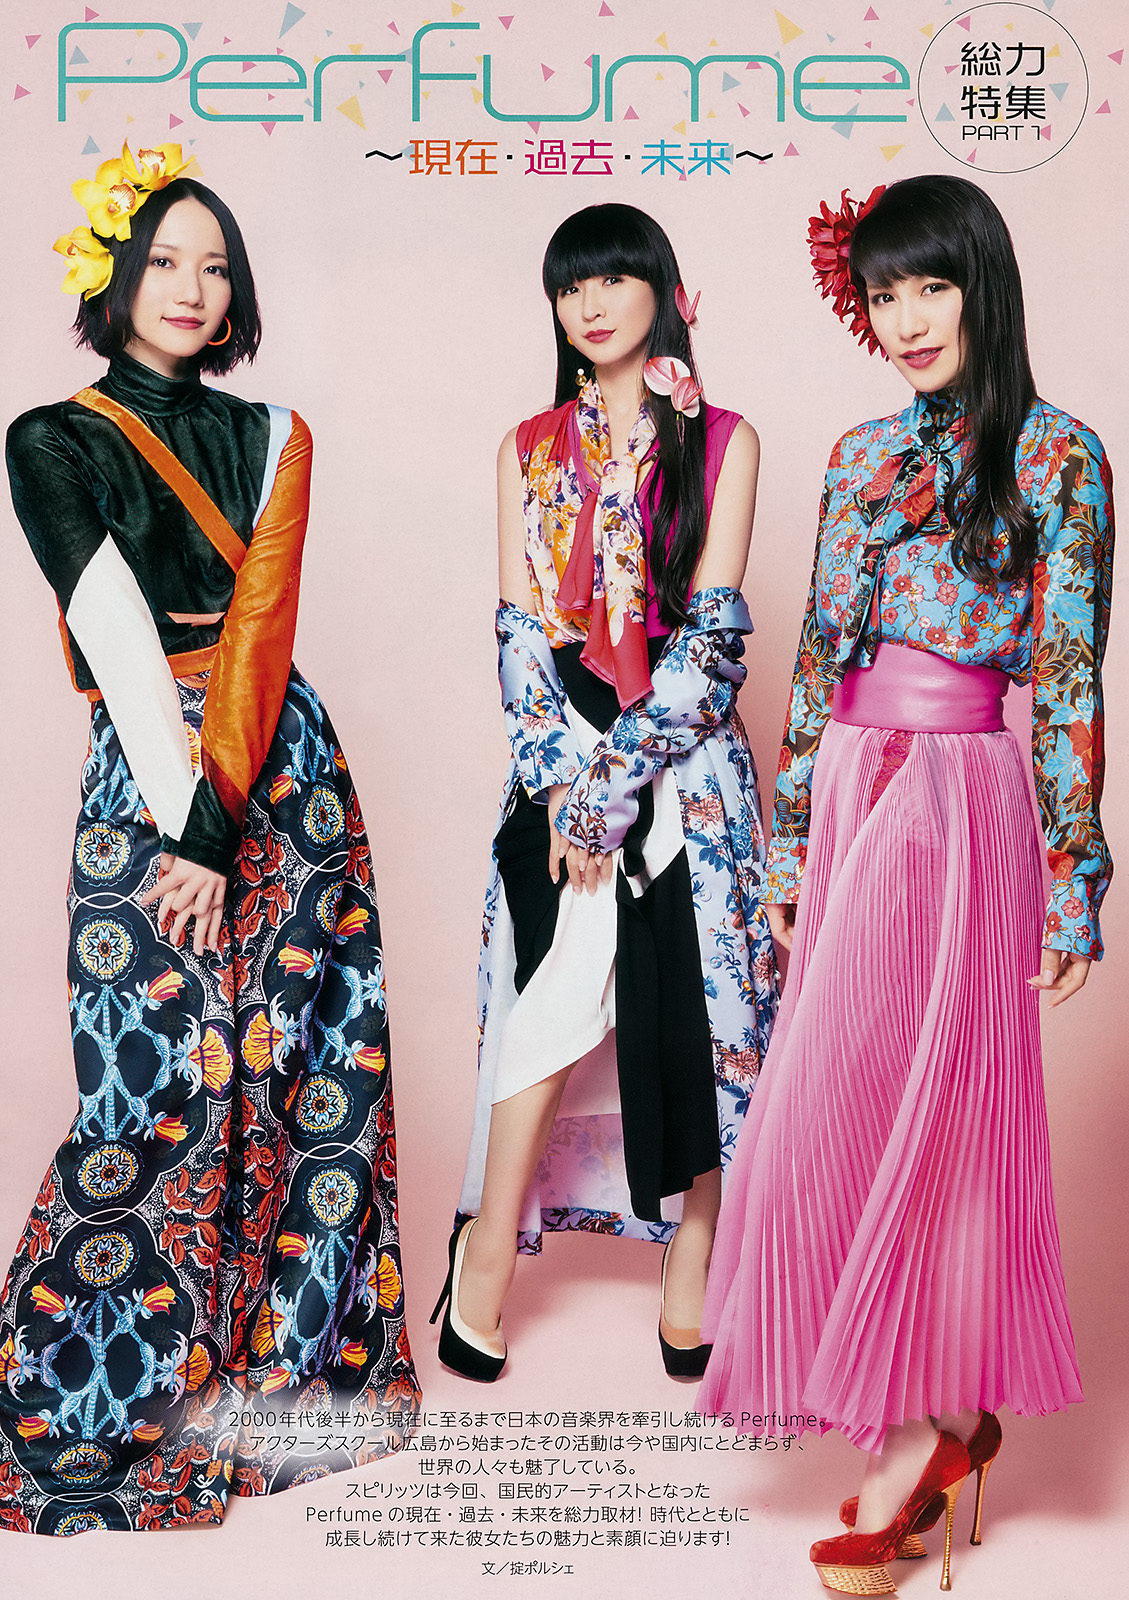 Perfume japanese group